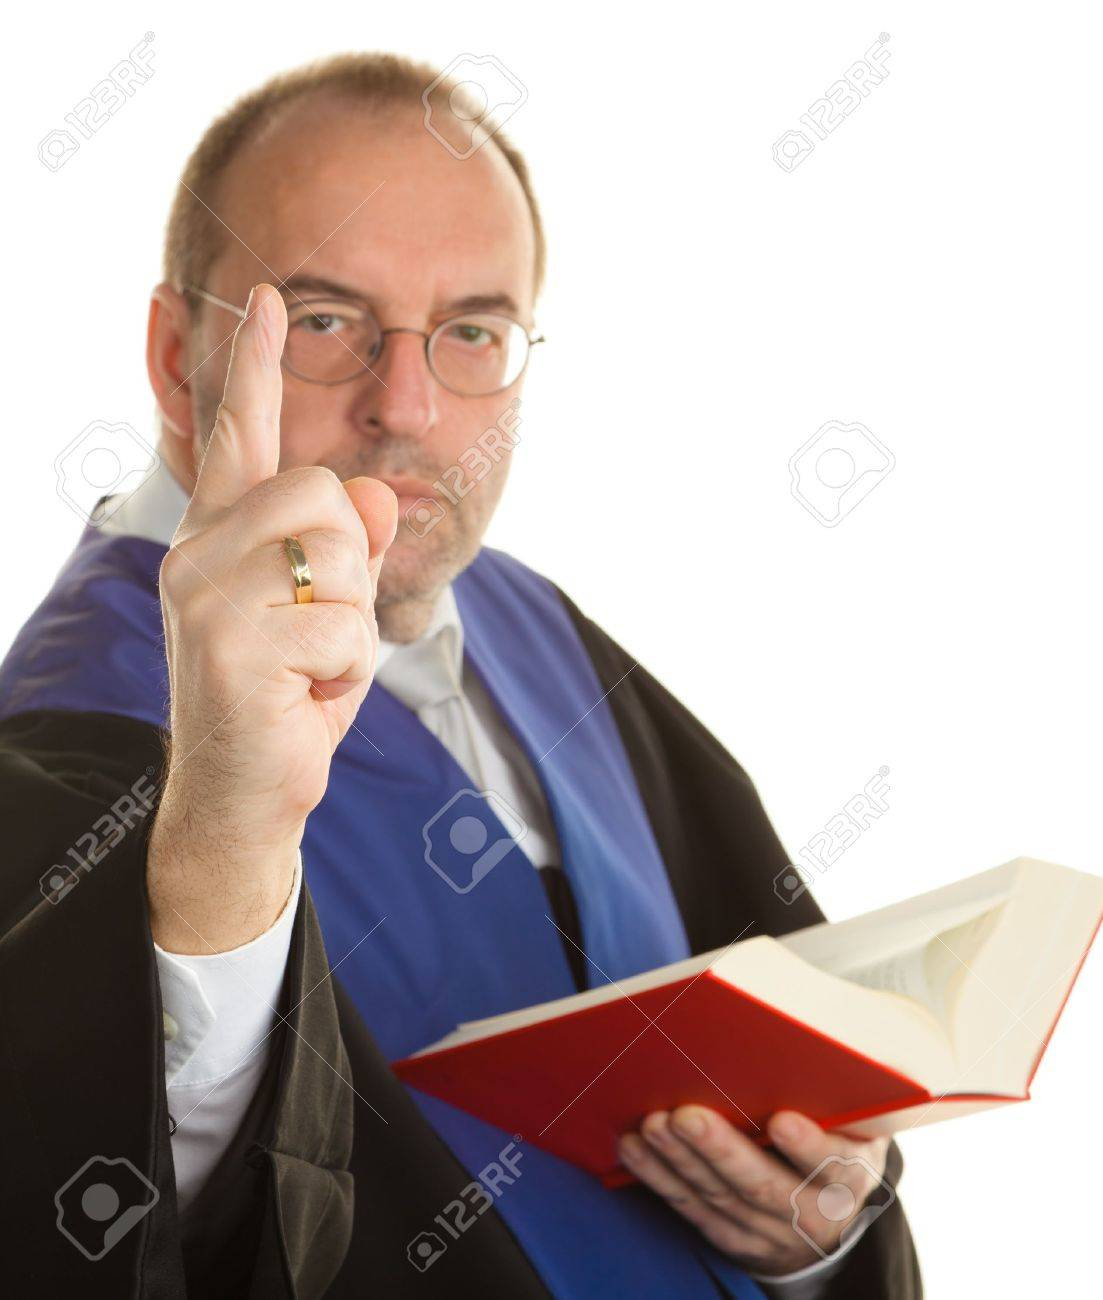 a judge with a law book in court. against a white background Stock Photo - 11276389